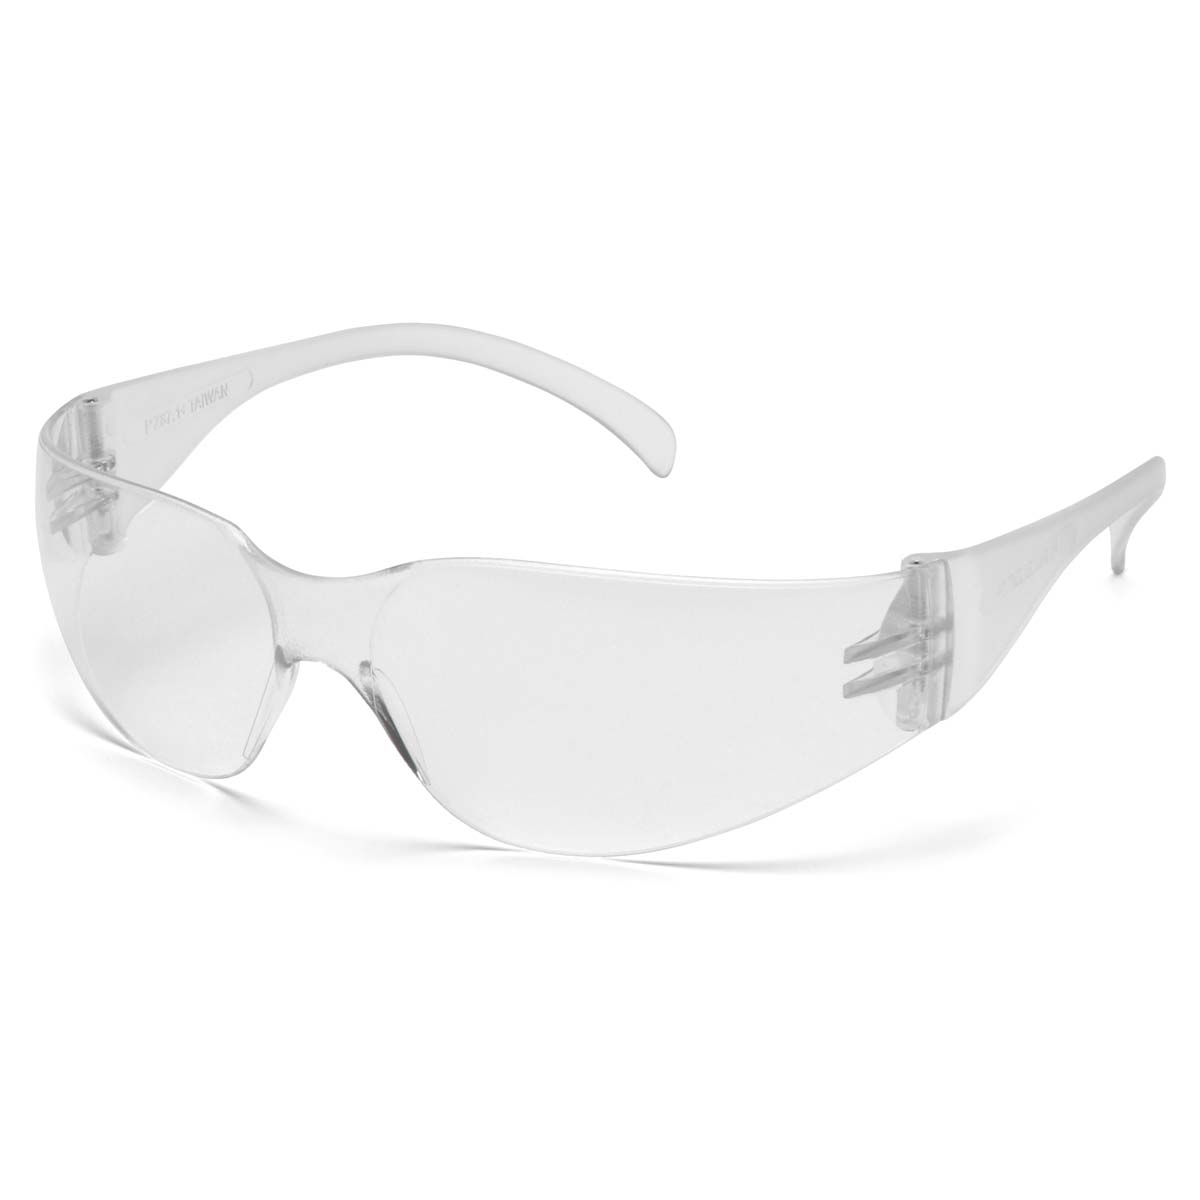 Clear Frame/Clear-Uncoated Lens